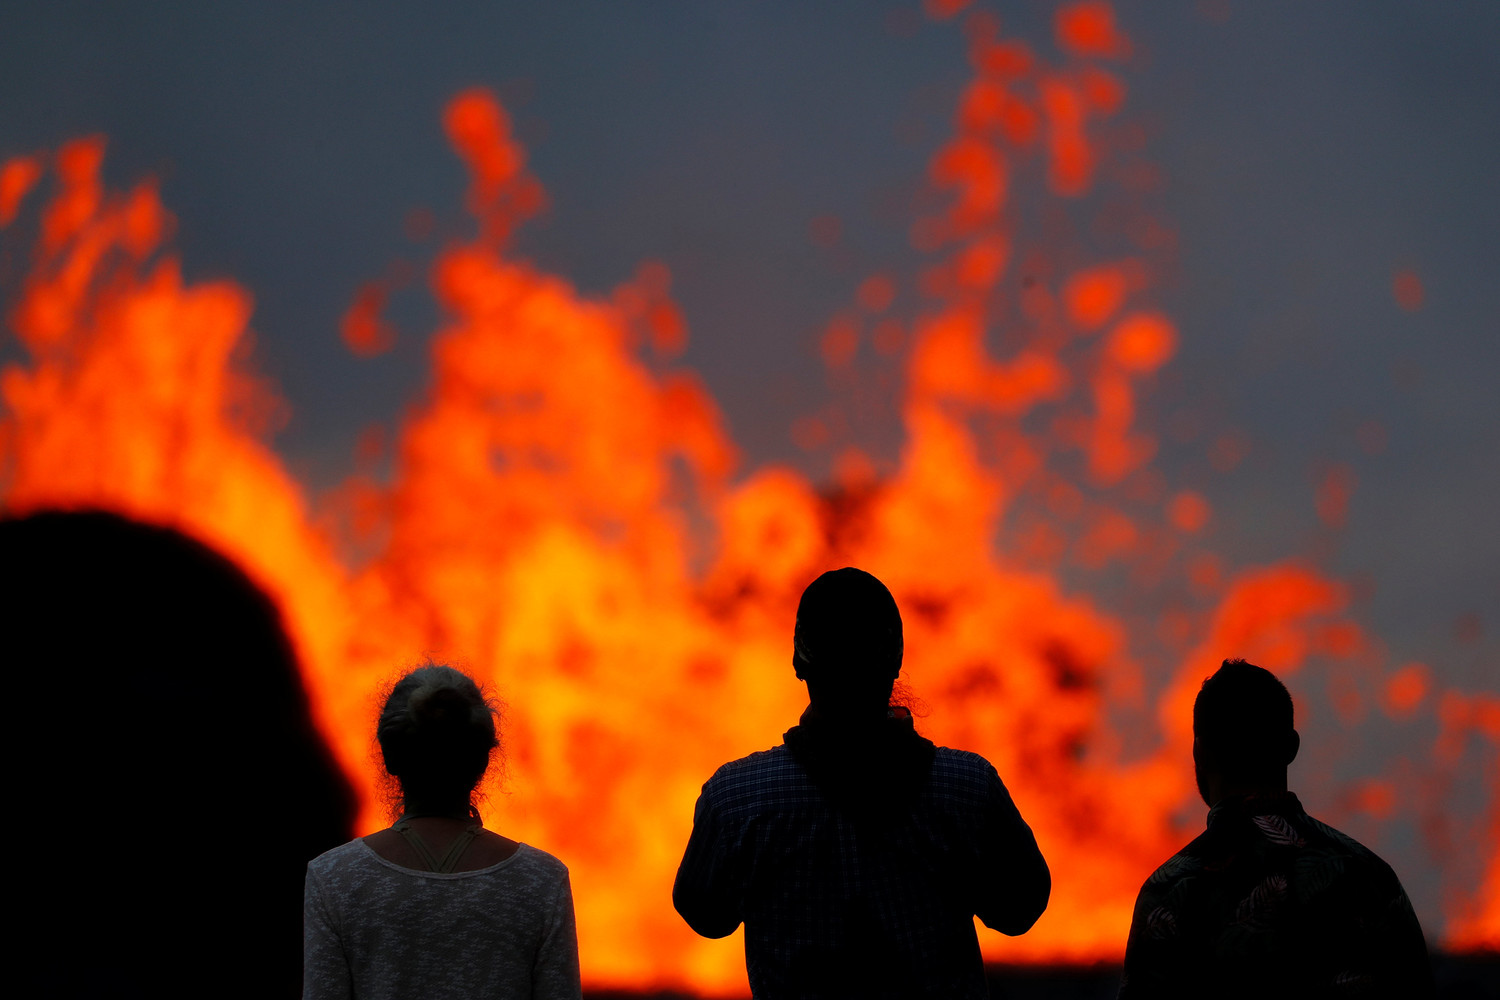 Onlookers stand on a lava flow to watch the Kilauea Volcano May 26 in the Leilani Estates near Pahoa, Hawaii. Hawaii County officials are alerting more residents in the Leilani Estates subdivision to flee fast-moving lava from Kilauea volcano. As of May 29, lava has destroyed 82 structures, including 37 homes.